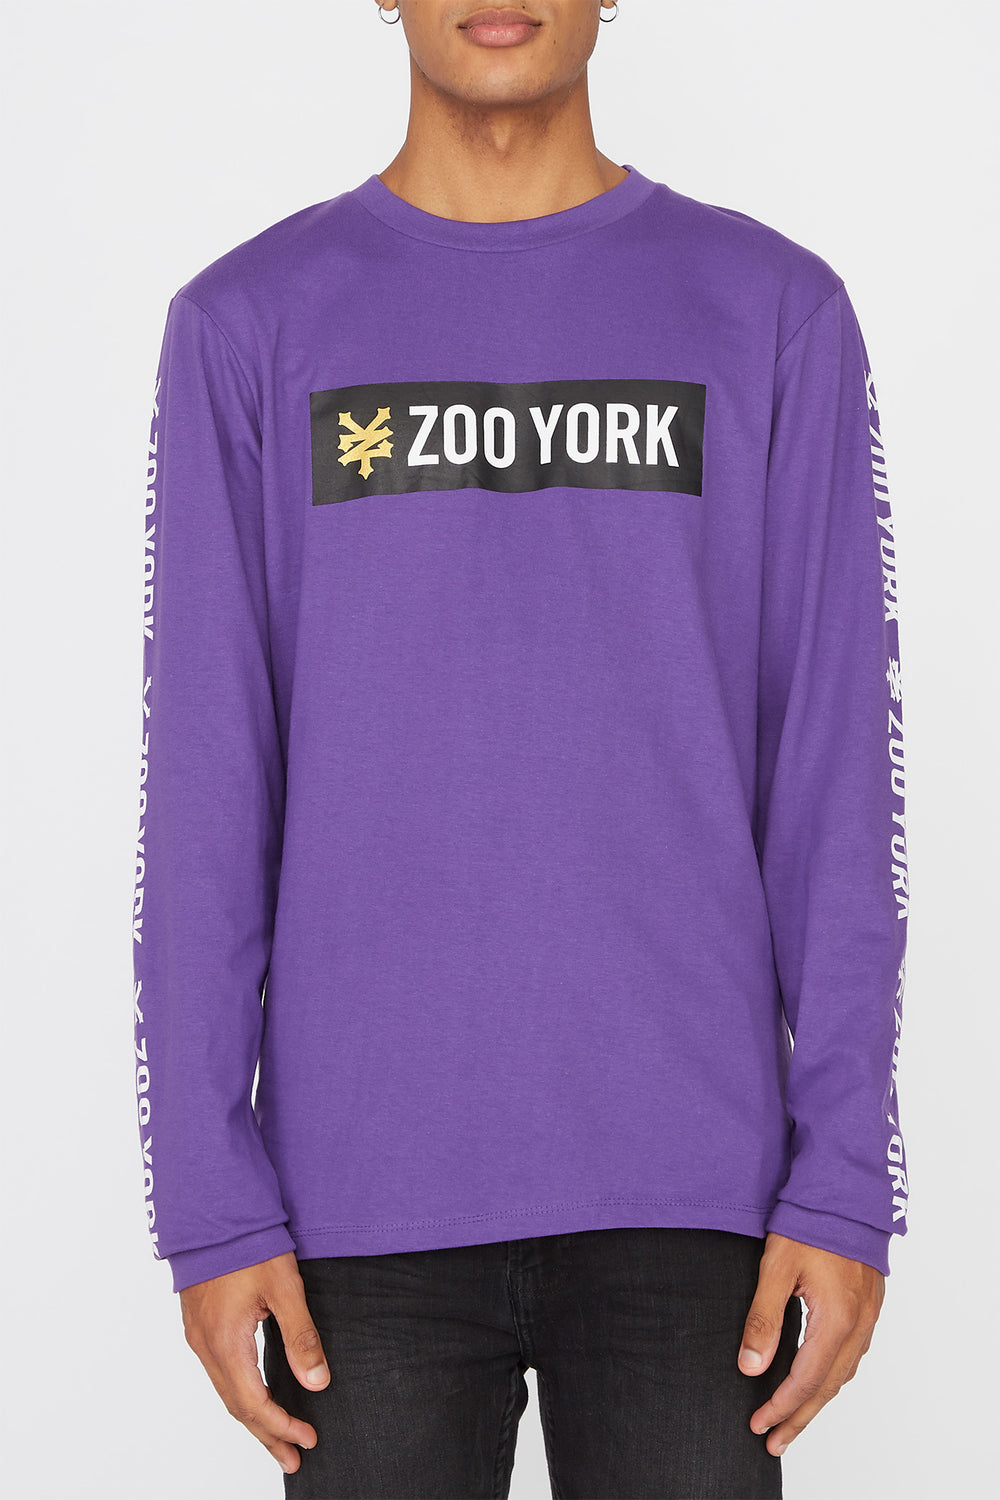 Zoo York Mens Classic Logo Long Sleeve Shirt Purple